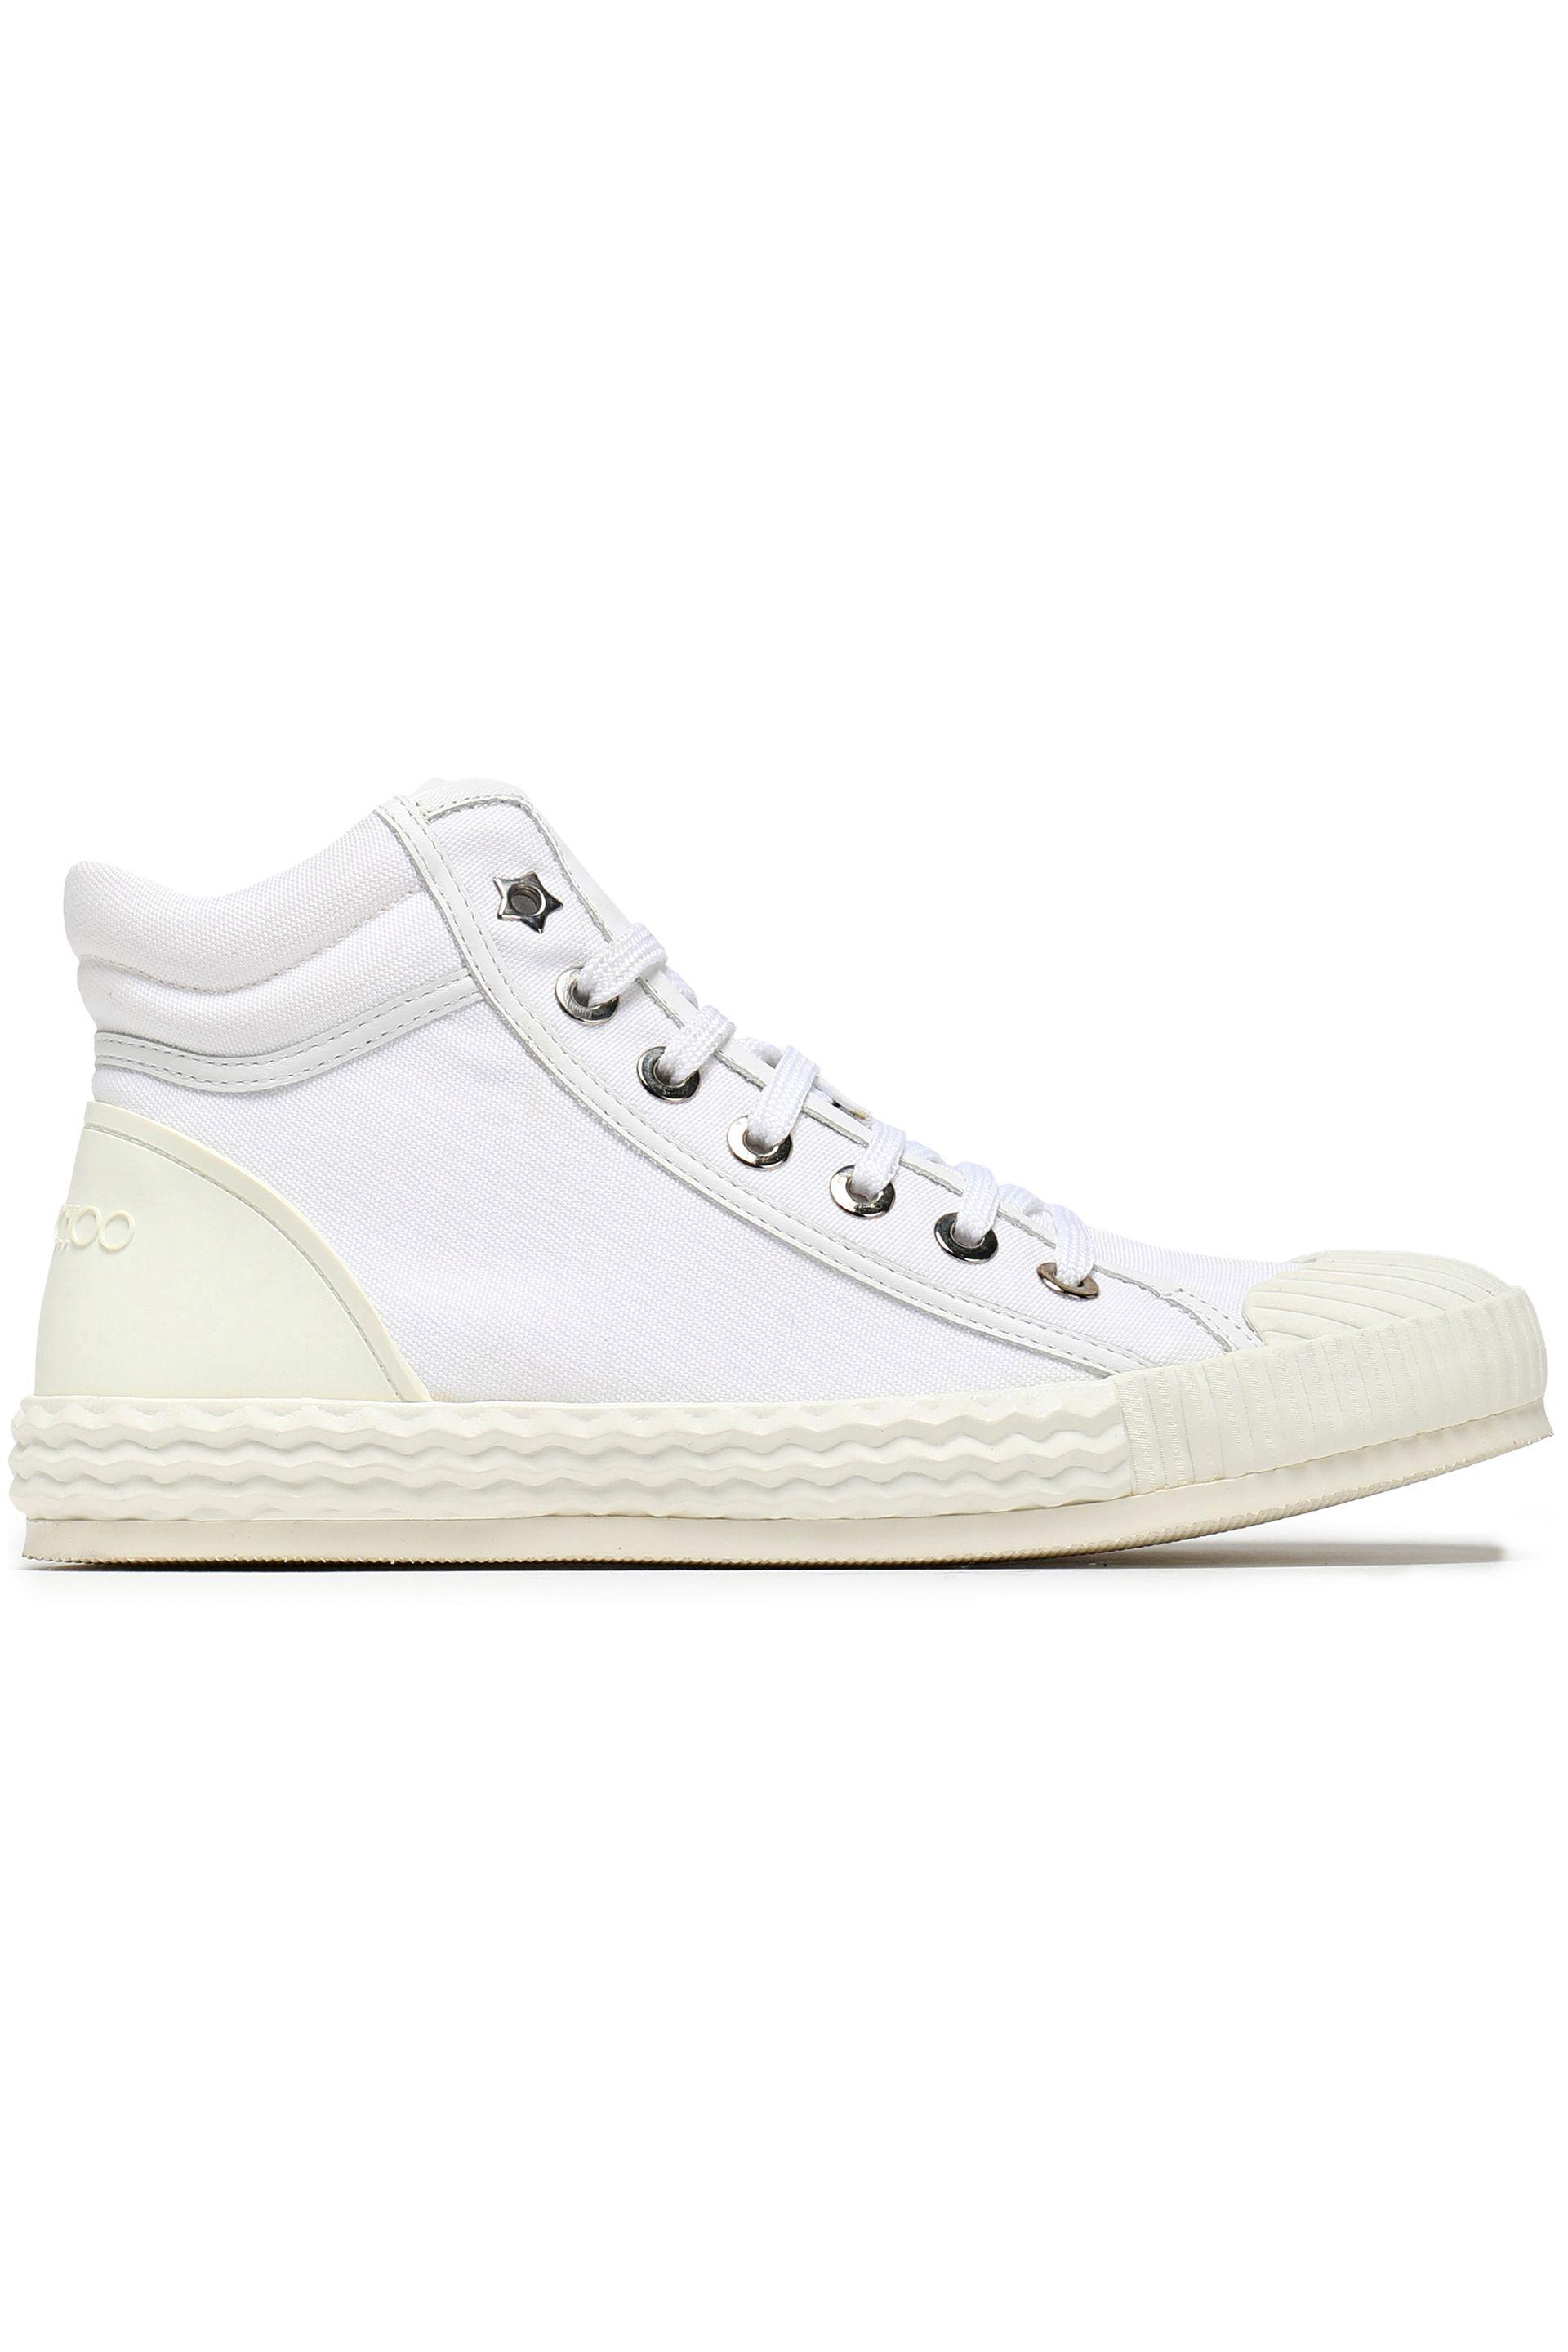 Jimmy Choo Woman Berlin Canvas And Embossed Leather High-top Sneakers White Size 41 Jimmy Choo London eKbyyL